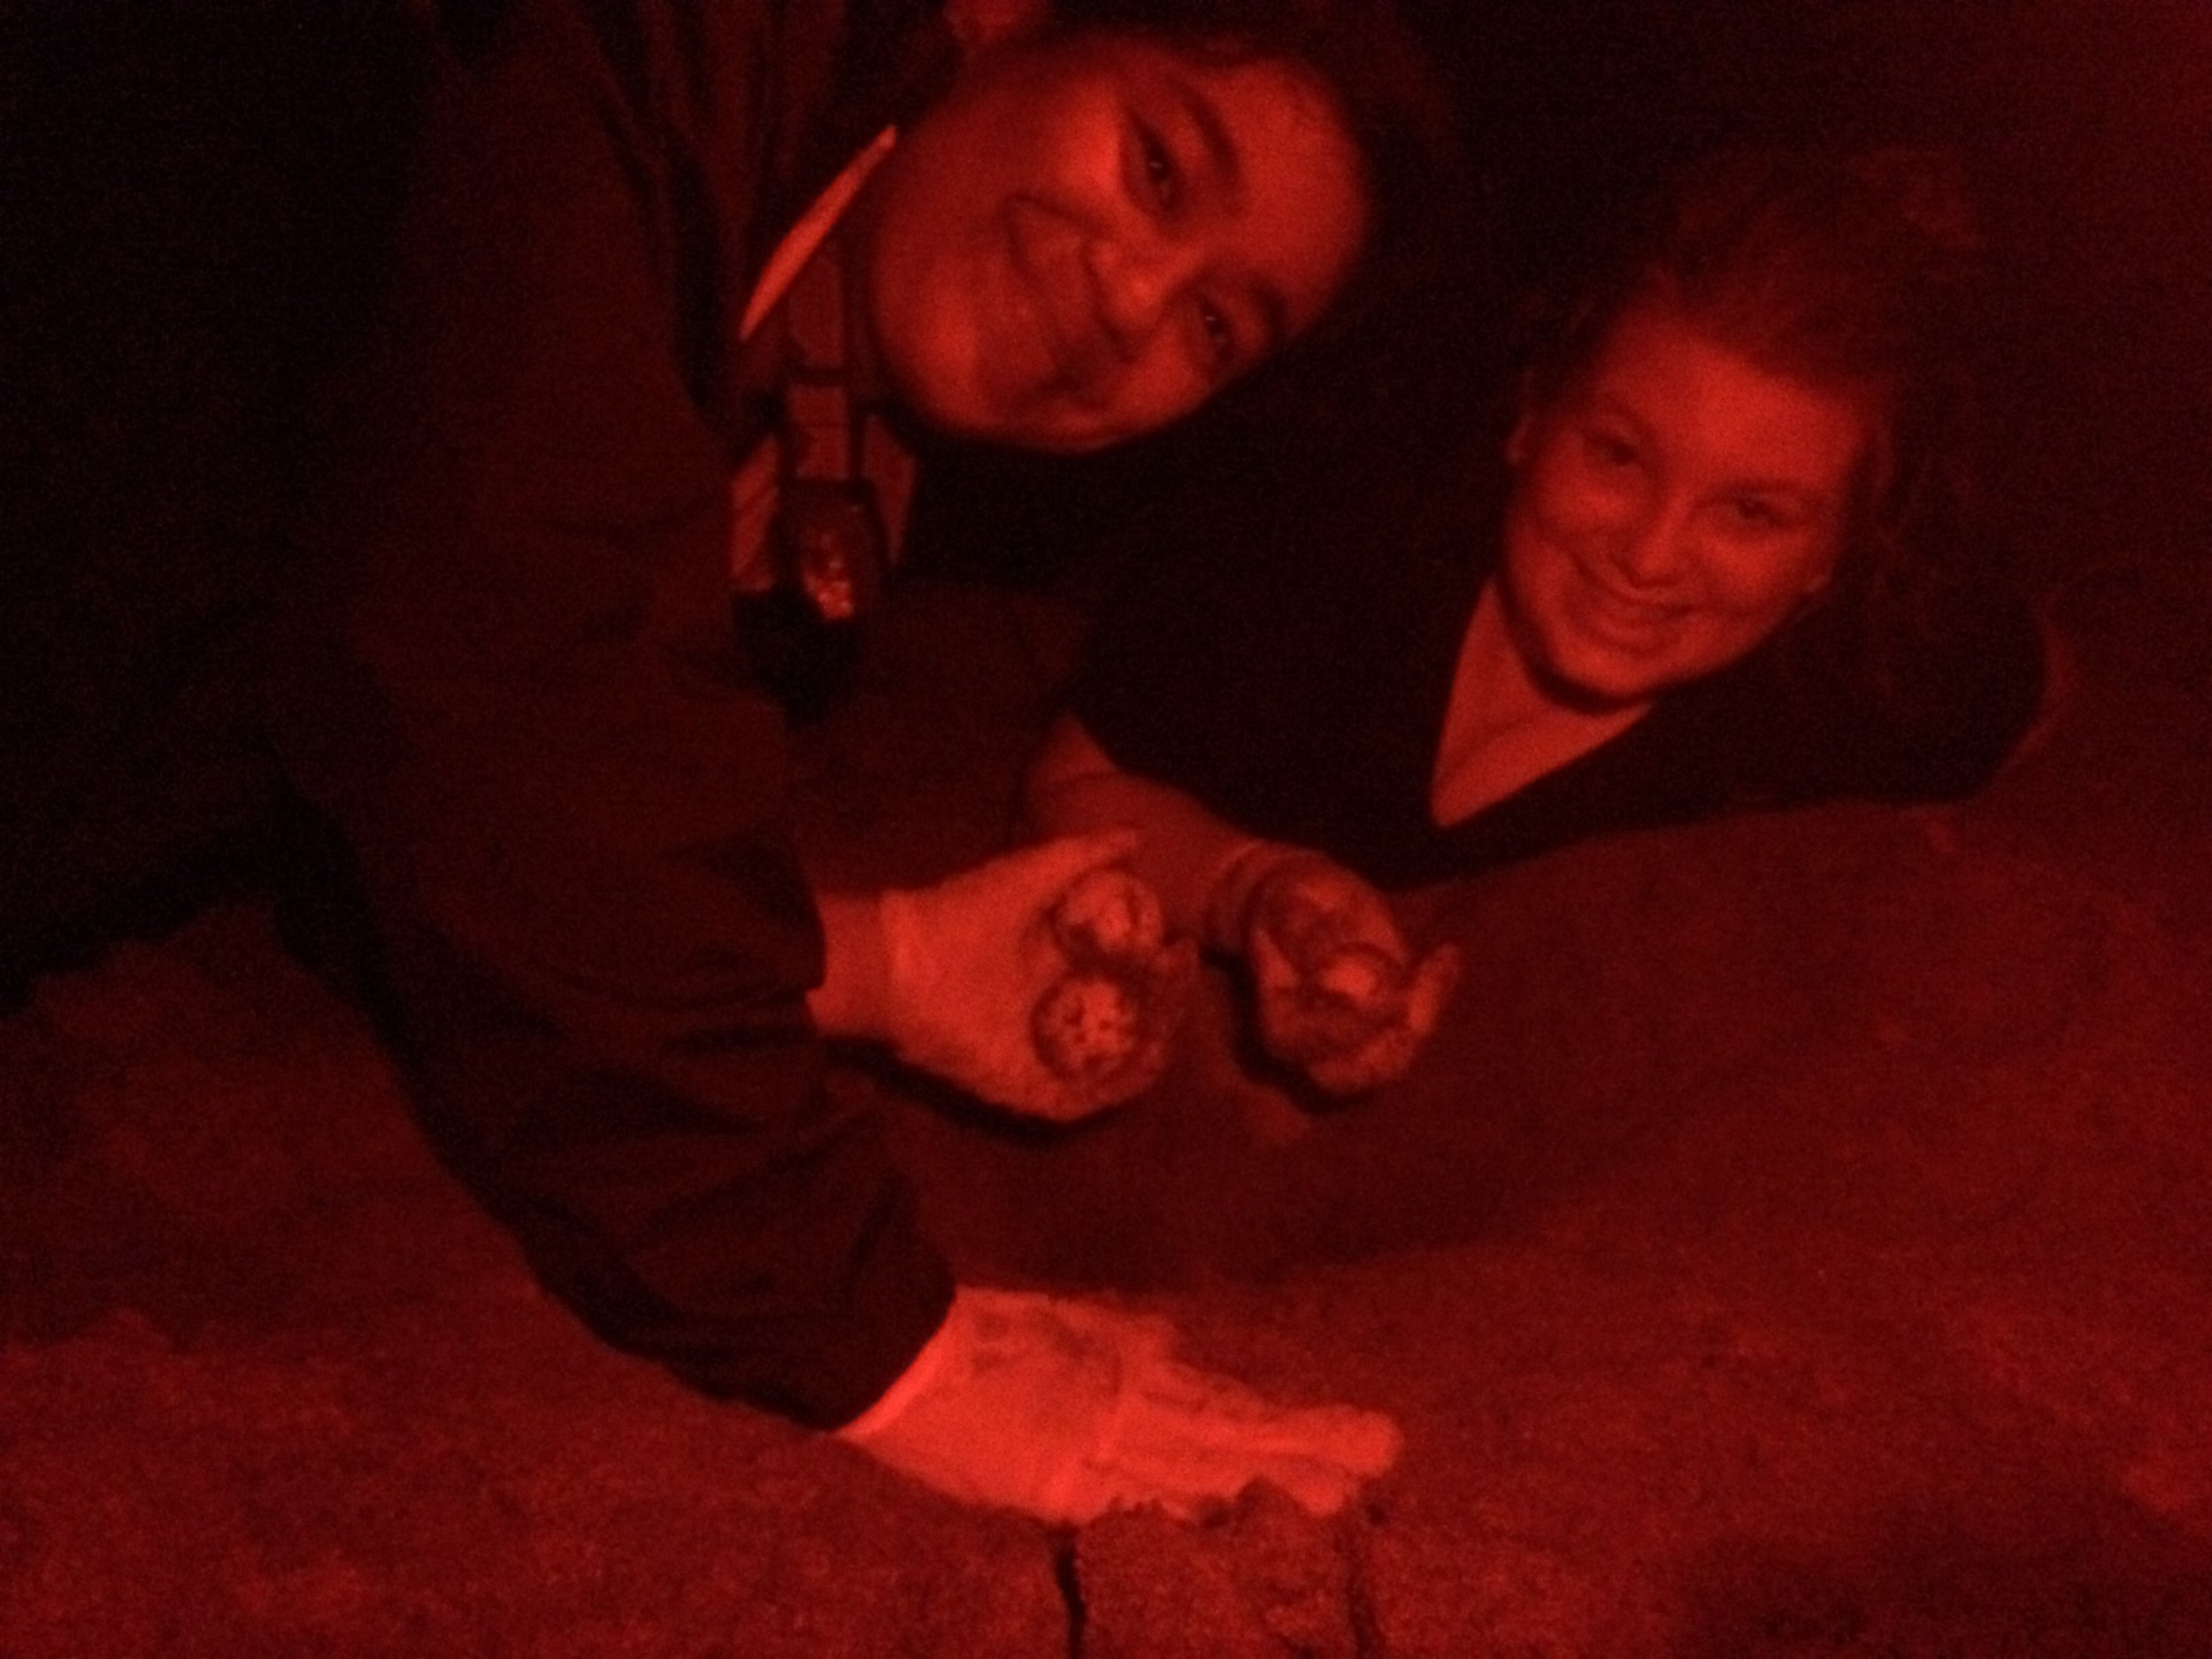 Hillary and April help in relocating green sea turtle eggs into a hidden nest with Kuemar Guanacaste turtle conservation project. (Photo taken with red light to not disturb turtles.)